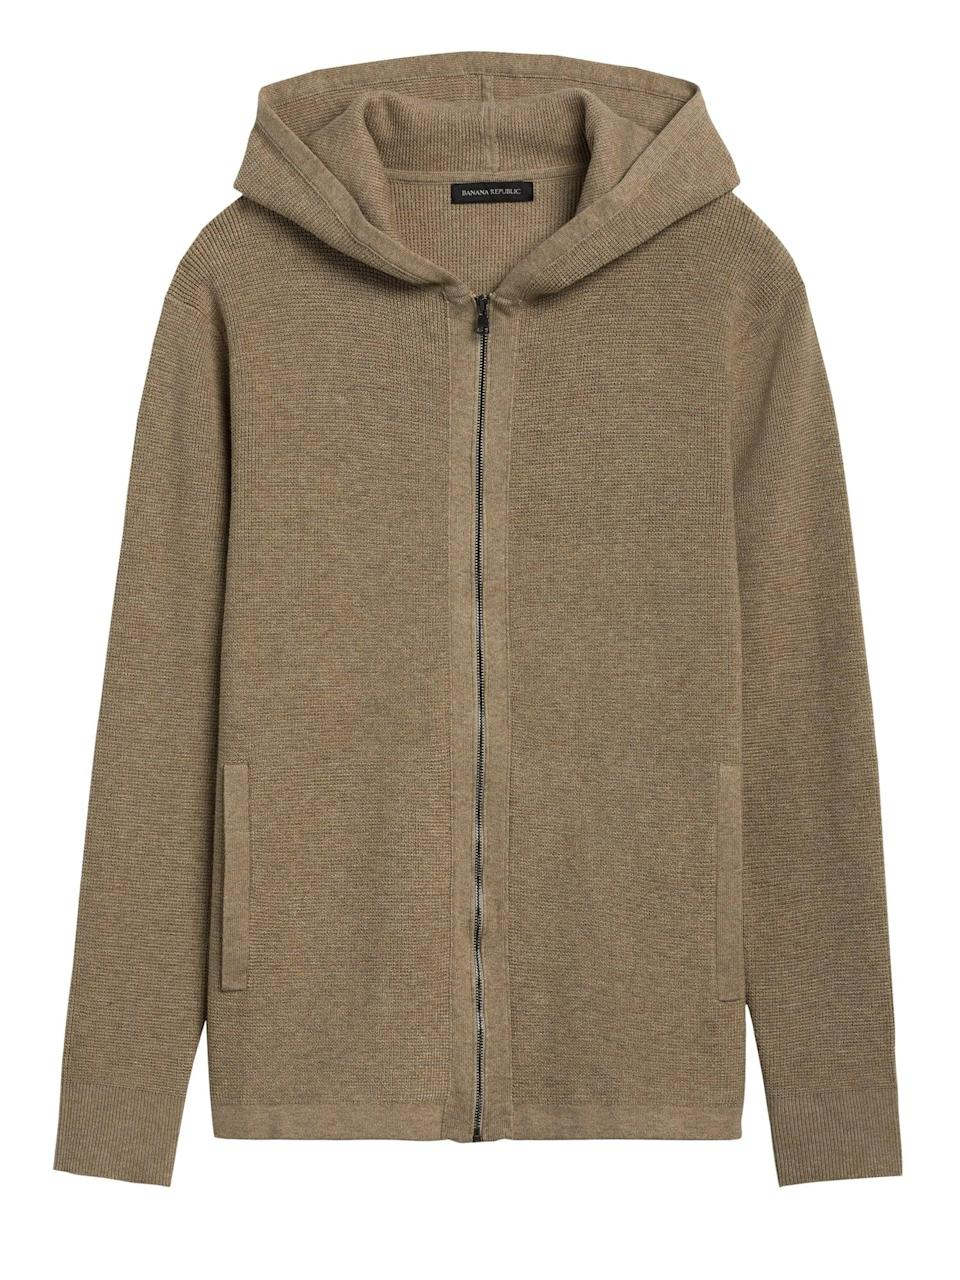 <p>If he prefers a zip up, get him this <span>Banana Republic SUPIMA® Cotton Sweater Jacket</span> ($129). SUPIMA® is the ultimate in luxury cotton!</p>